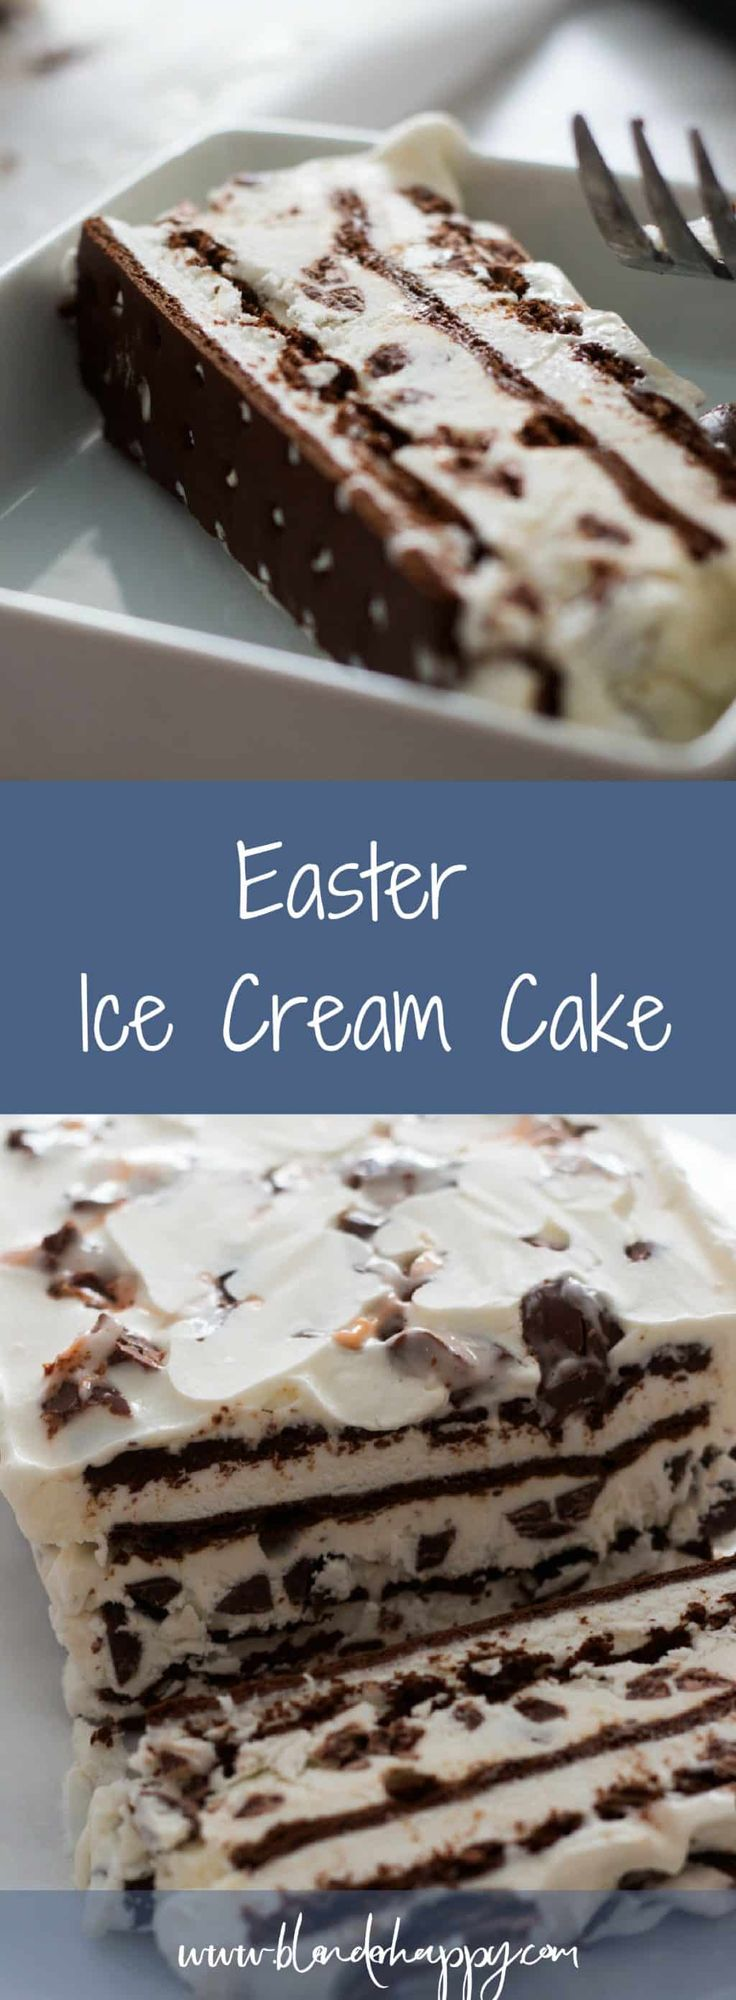 Easter Ice Cream Cake is the perfect seasonal dessert to make at home. It is easy yet will still impress your kids. via @blenderhappy